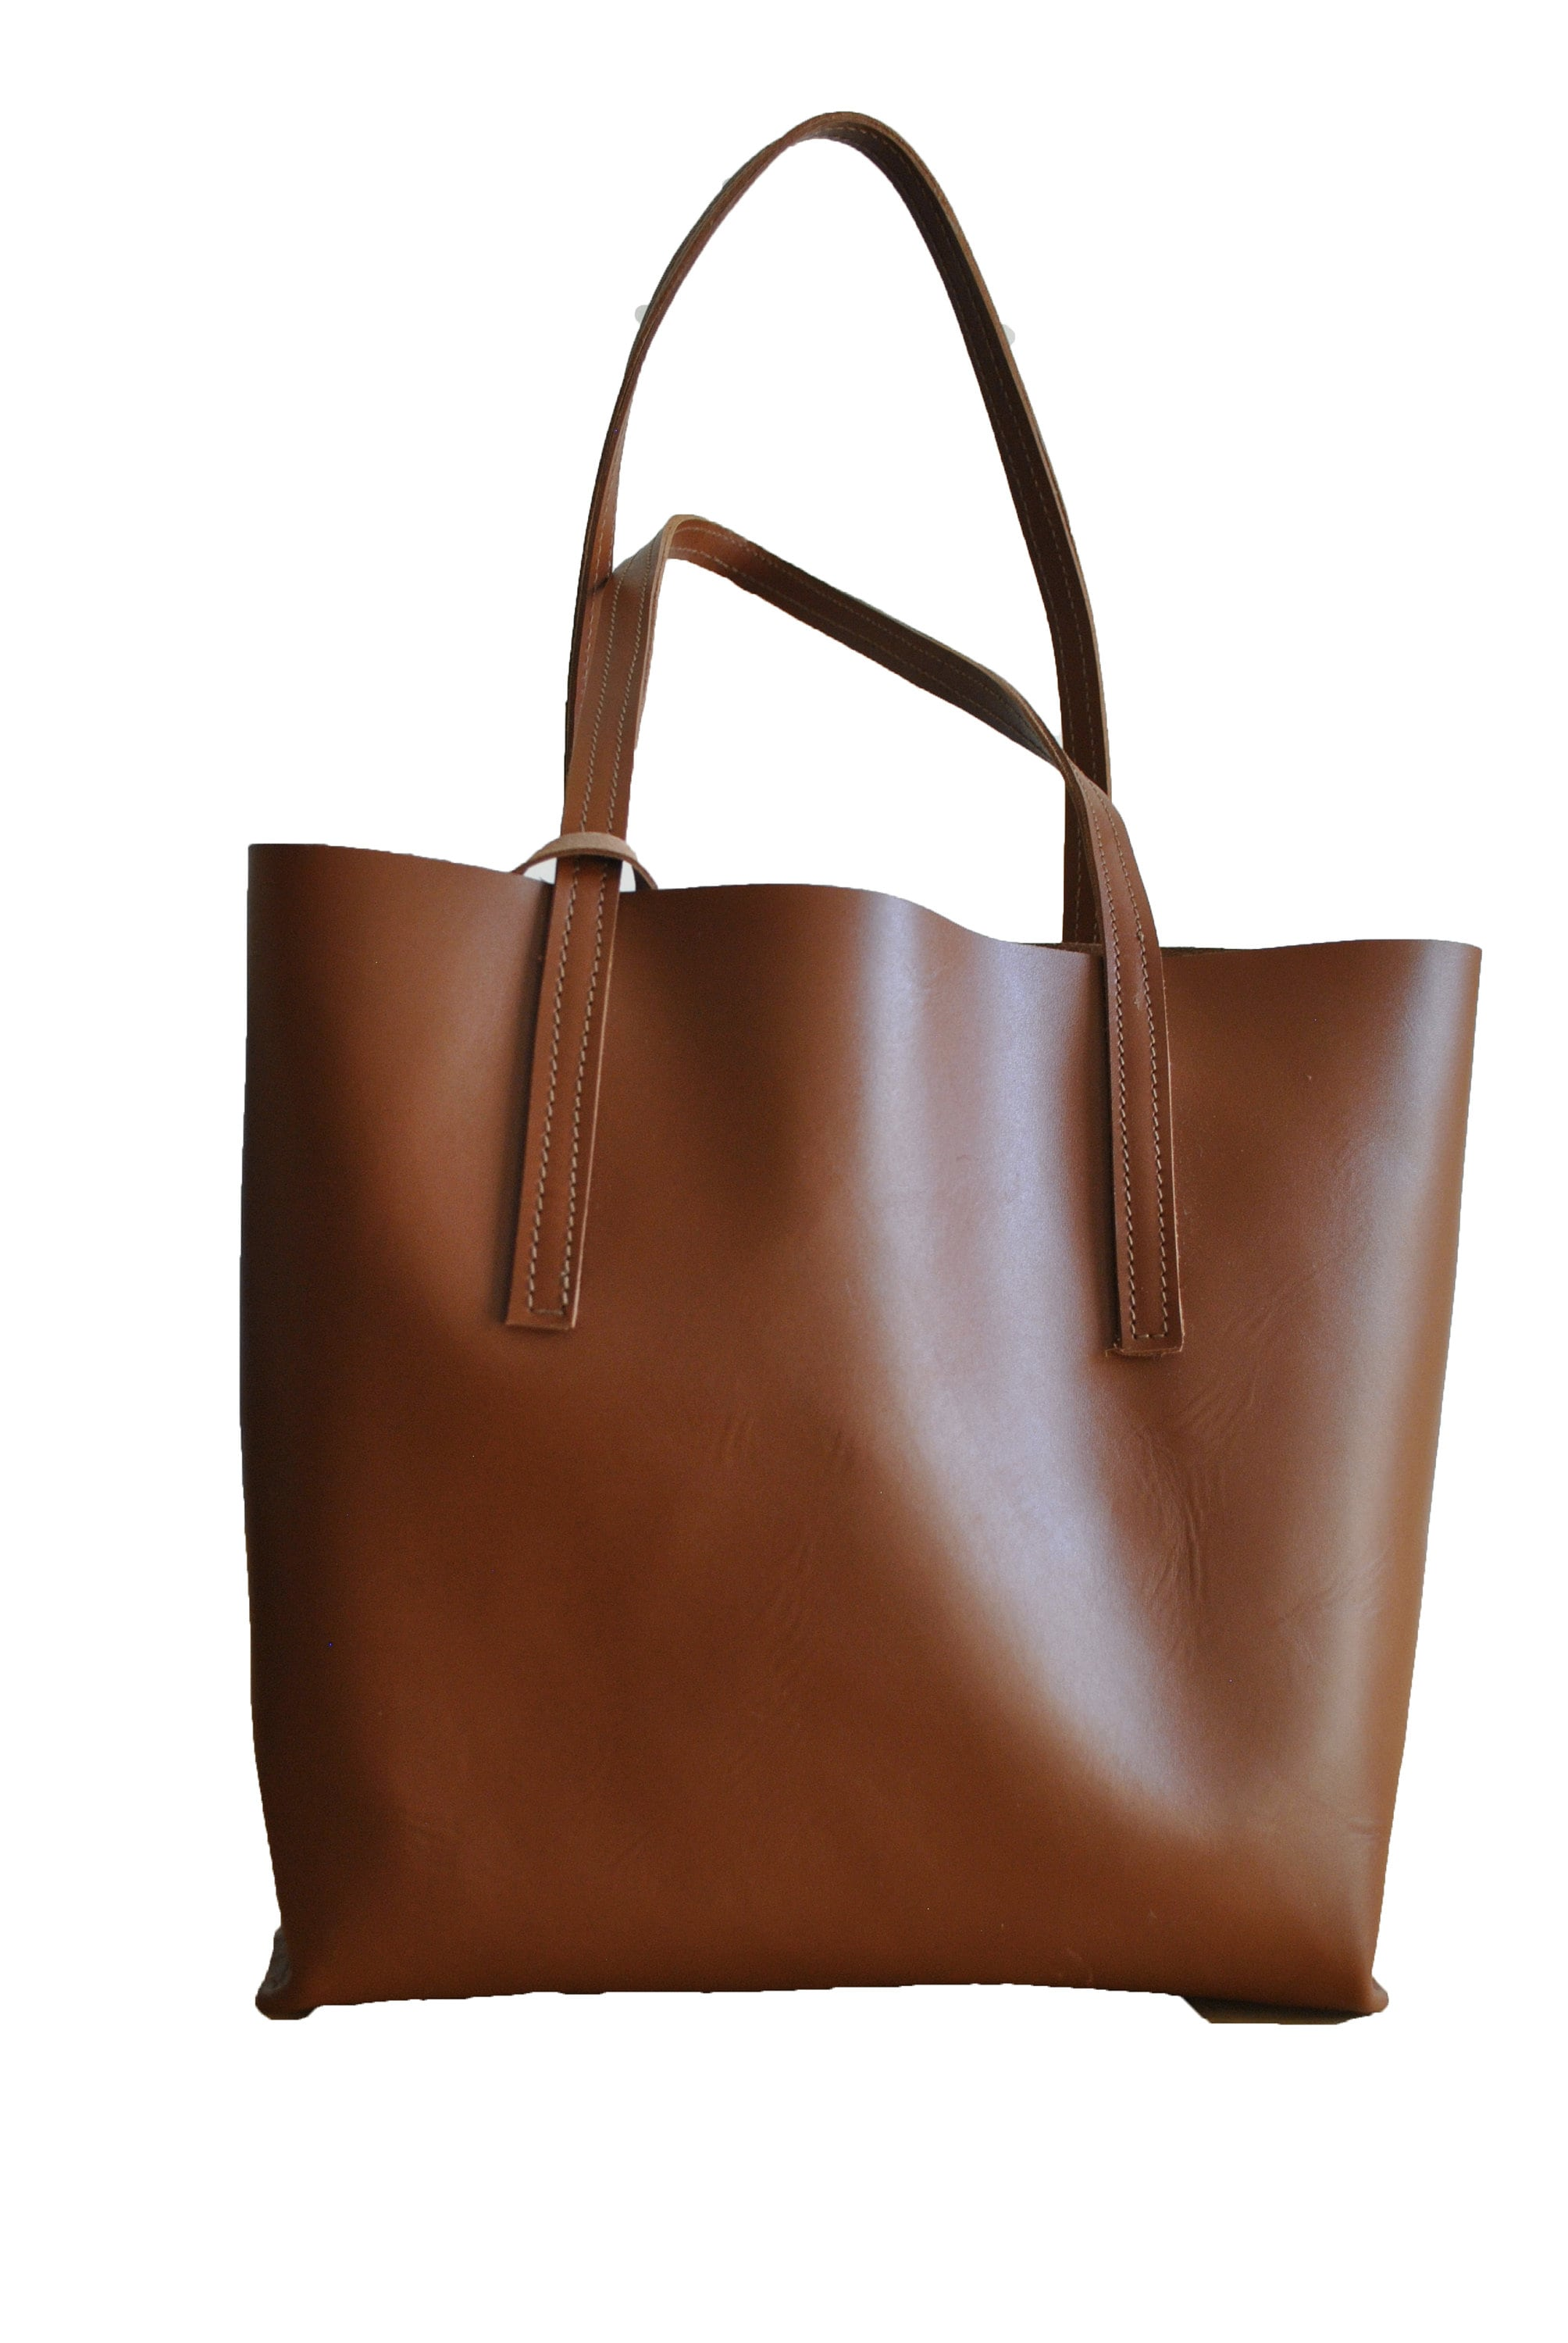 dd0c1c7782ac Leather tote bag   handmade leather bag   tote bag   large